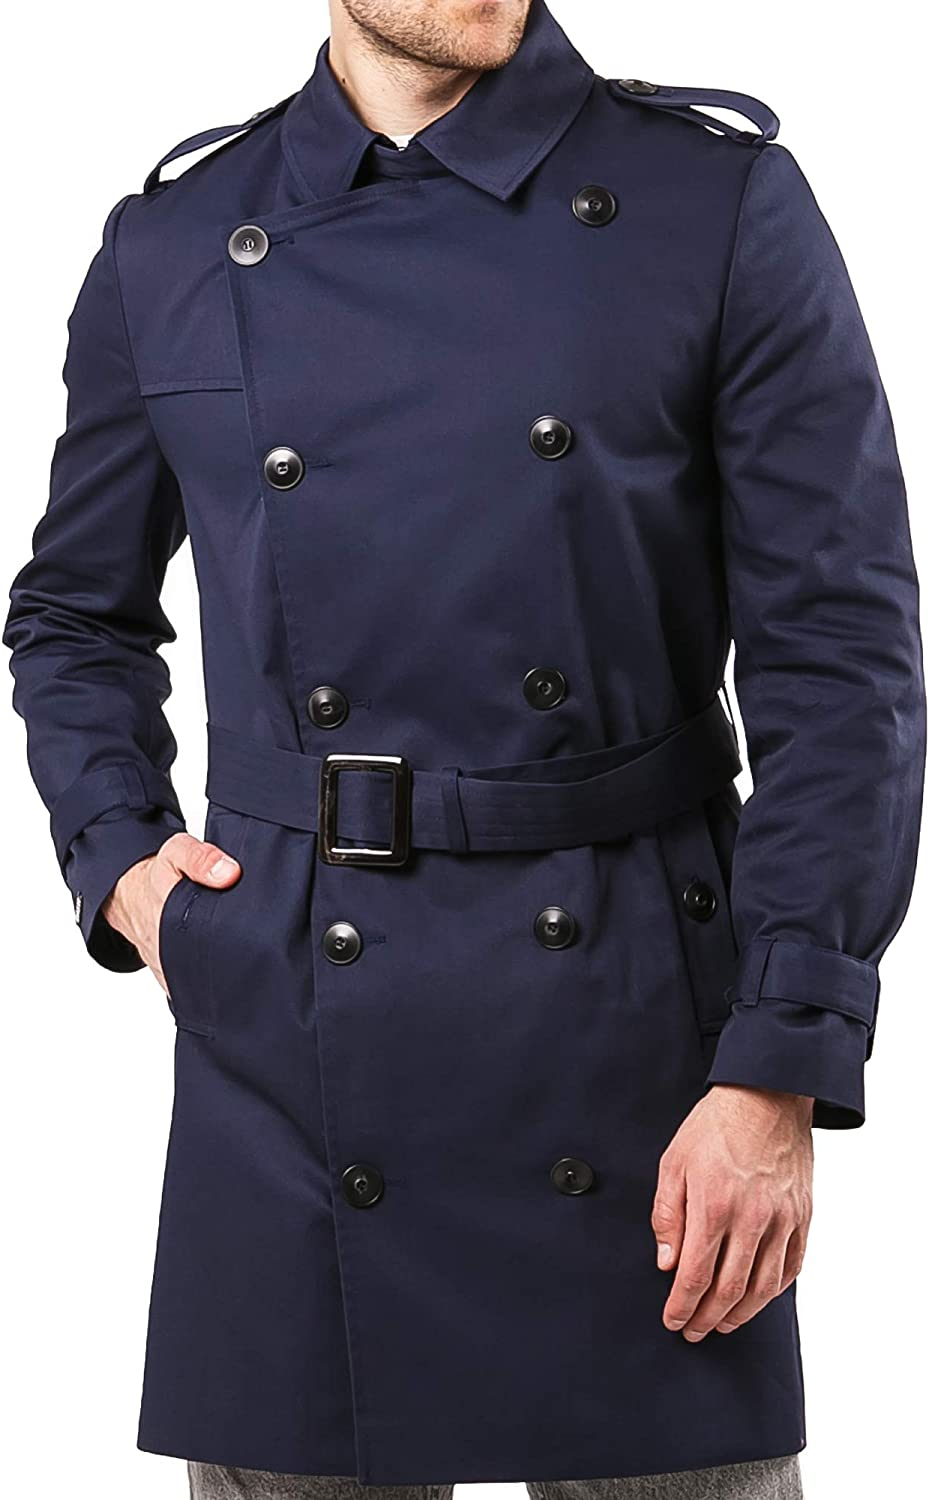 Mens Trench Coat Raincoat Fall Light Jackets for Men Rain Double Breasted Suit